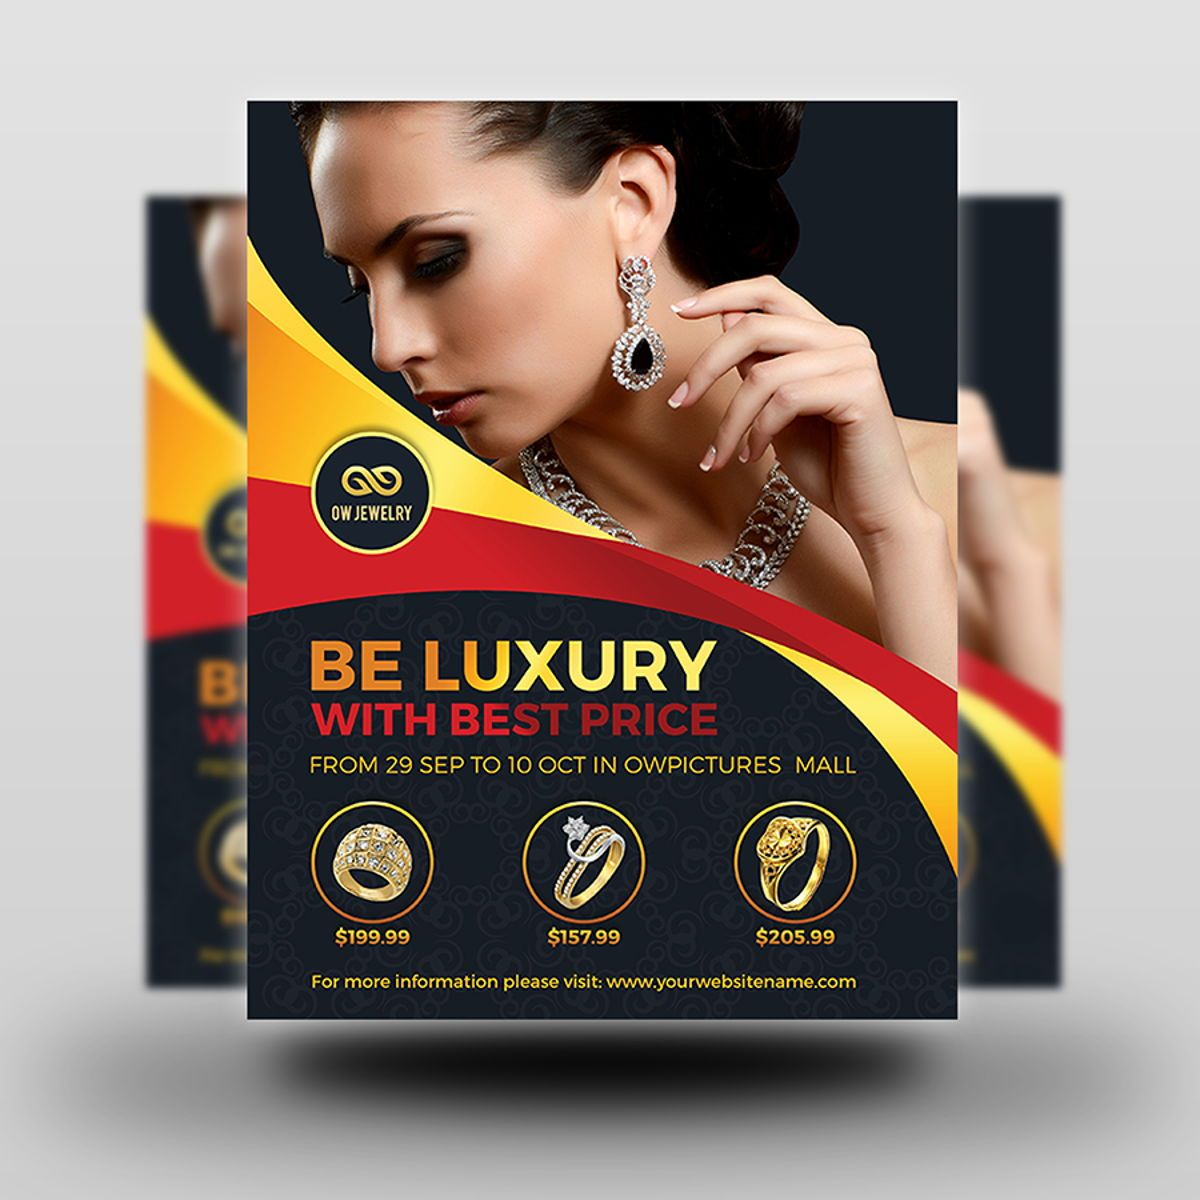 Jewelry Flyer Template, Diapositive 2, 08453, Concepts commerciaux — PoweredTemplate.com